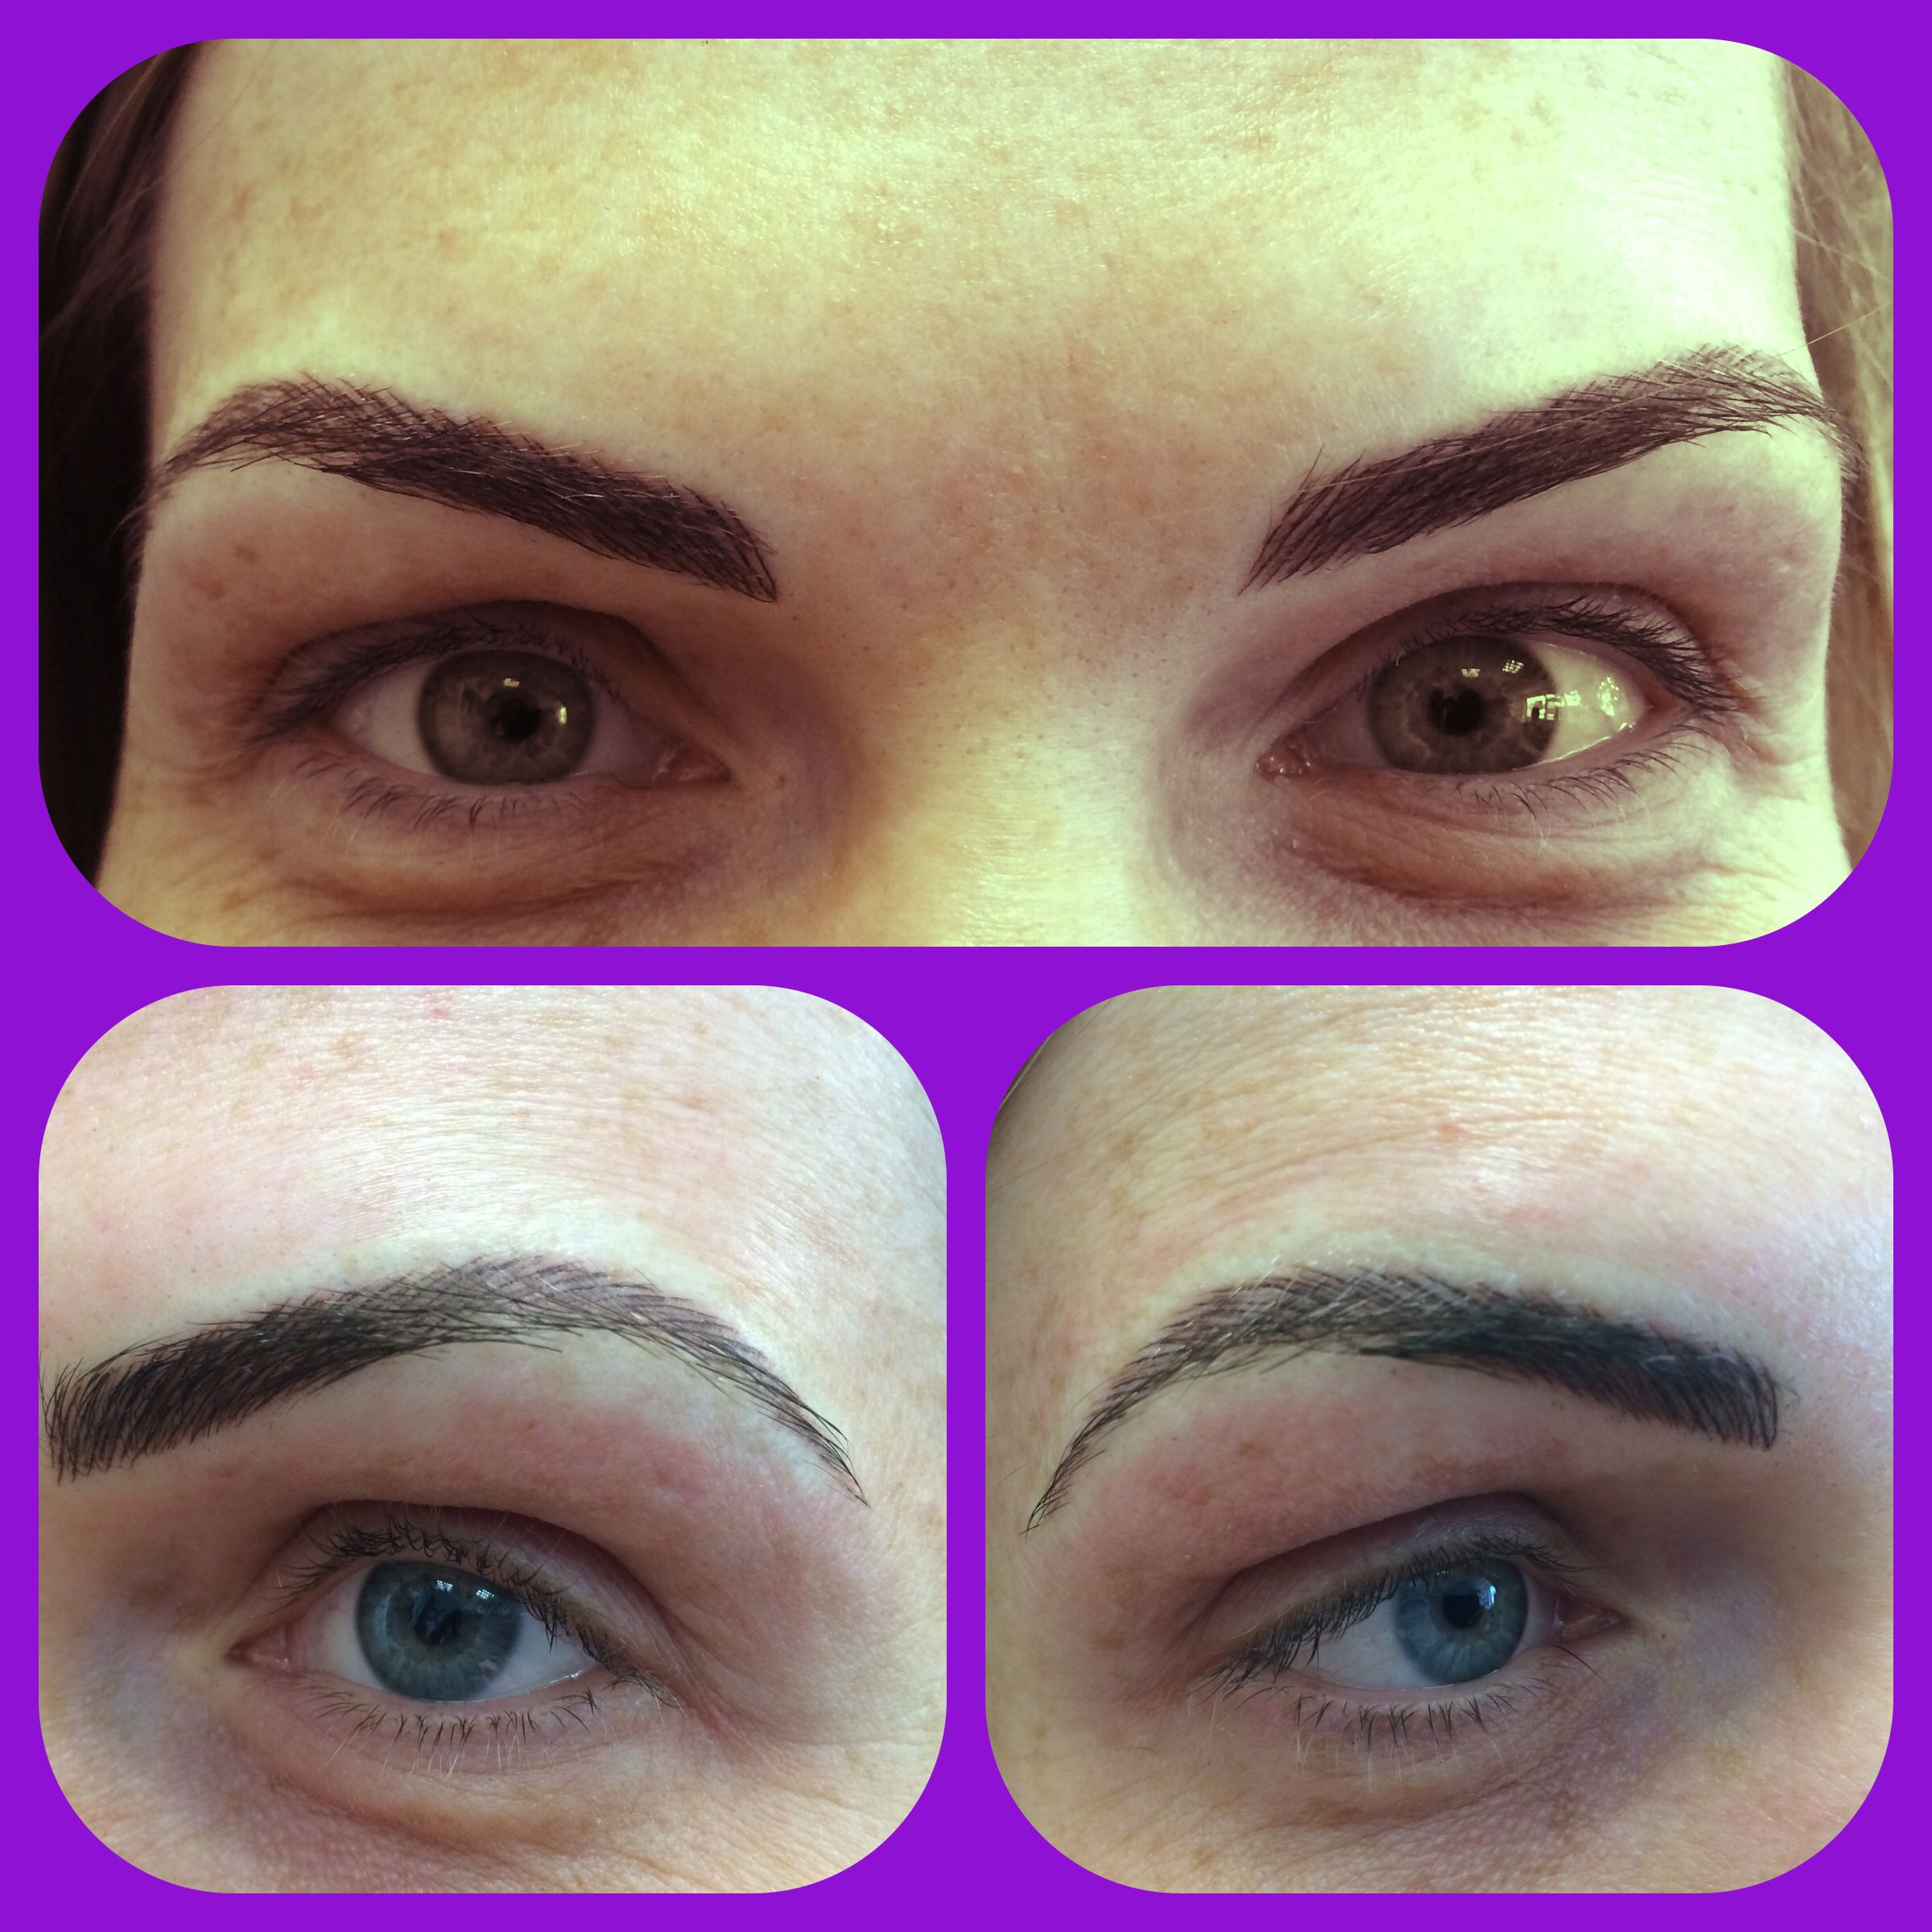 New brows down today semipermanentmakeup hairstroke